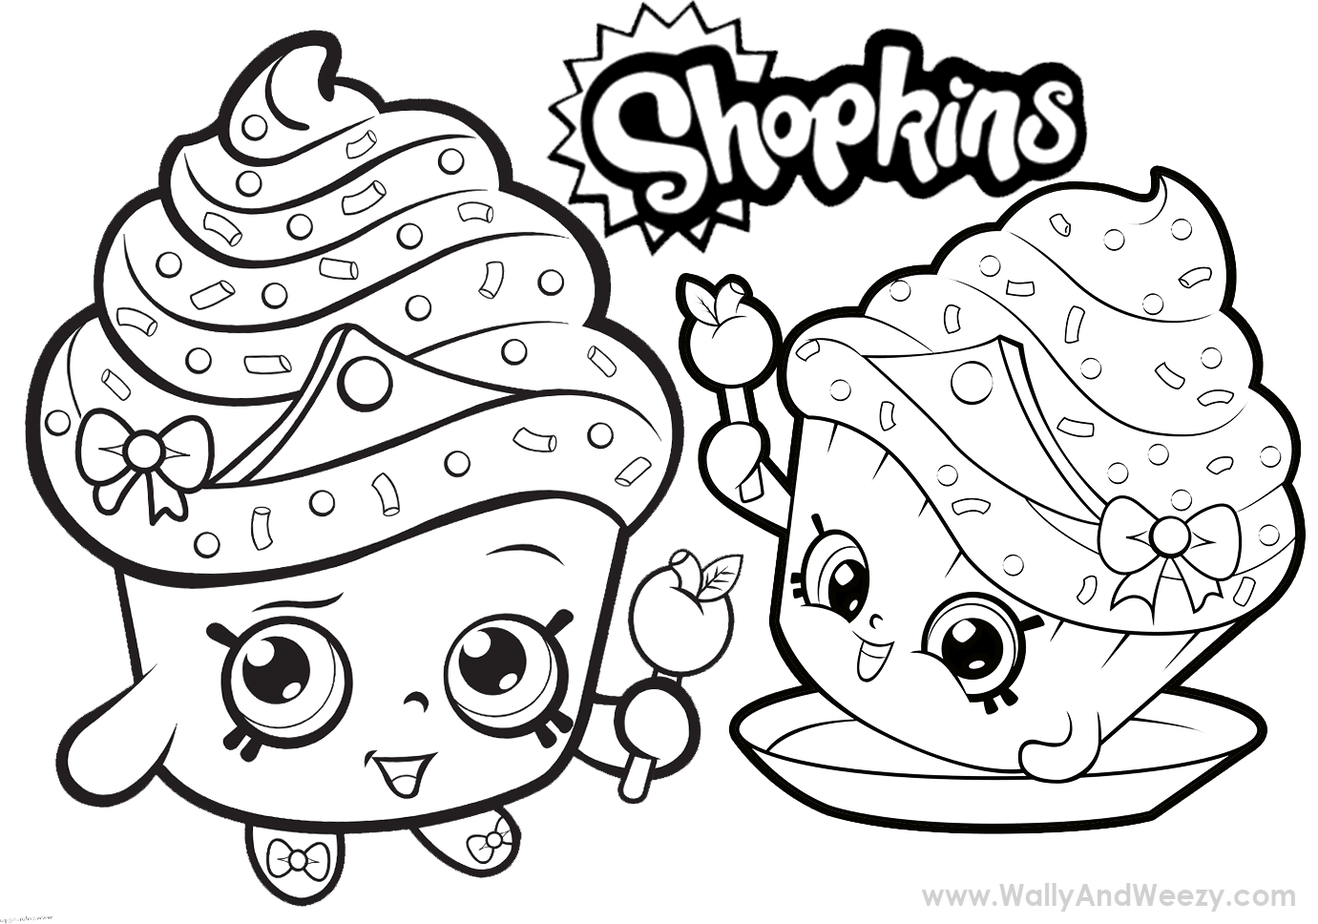 shopkins-queen-and-princess-coloring-page